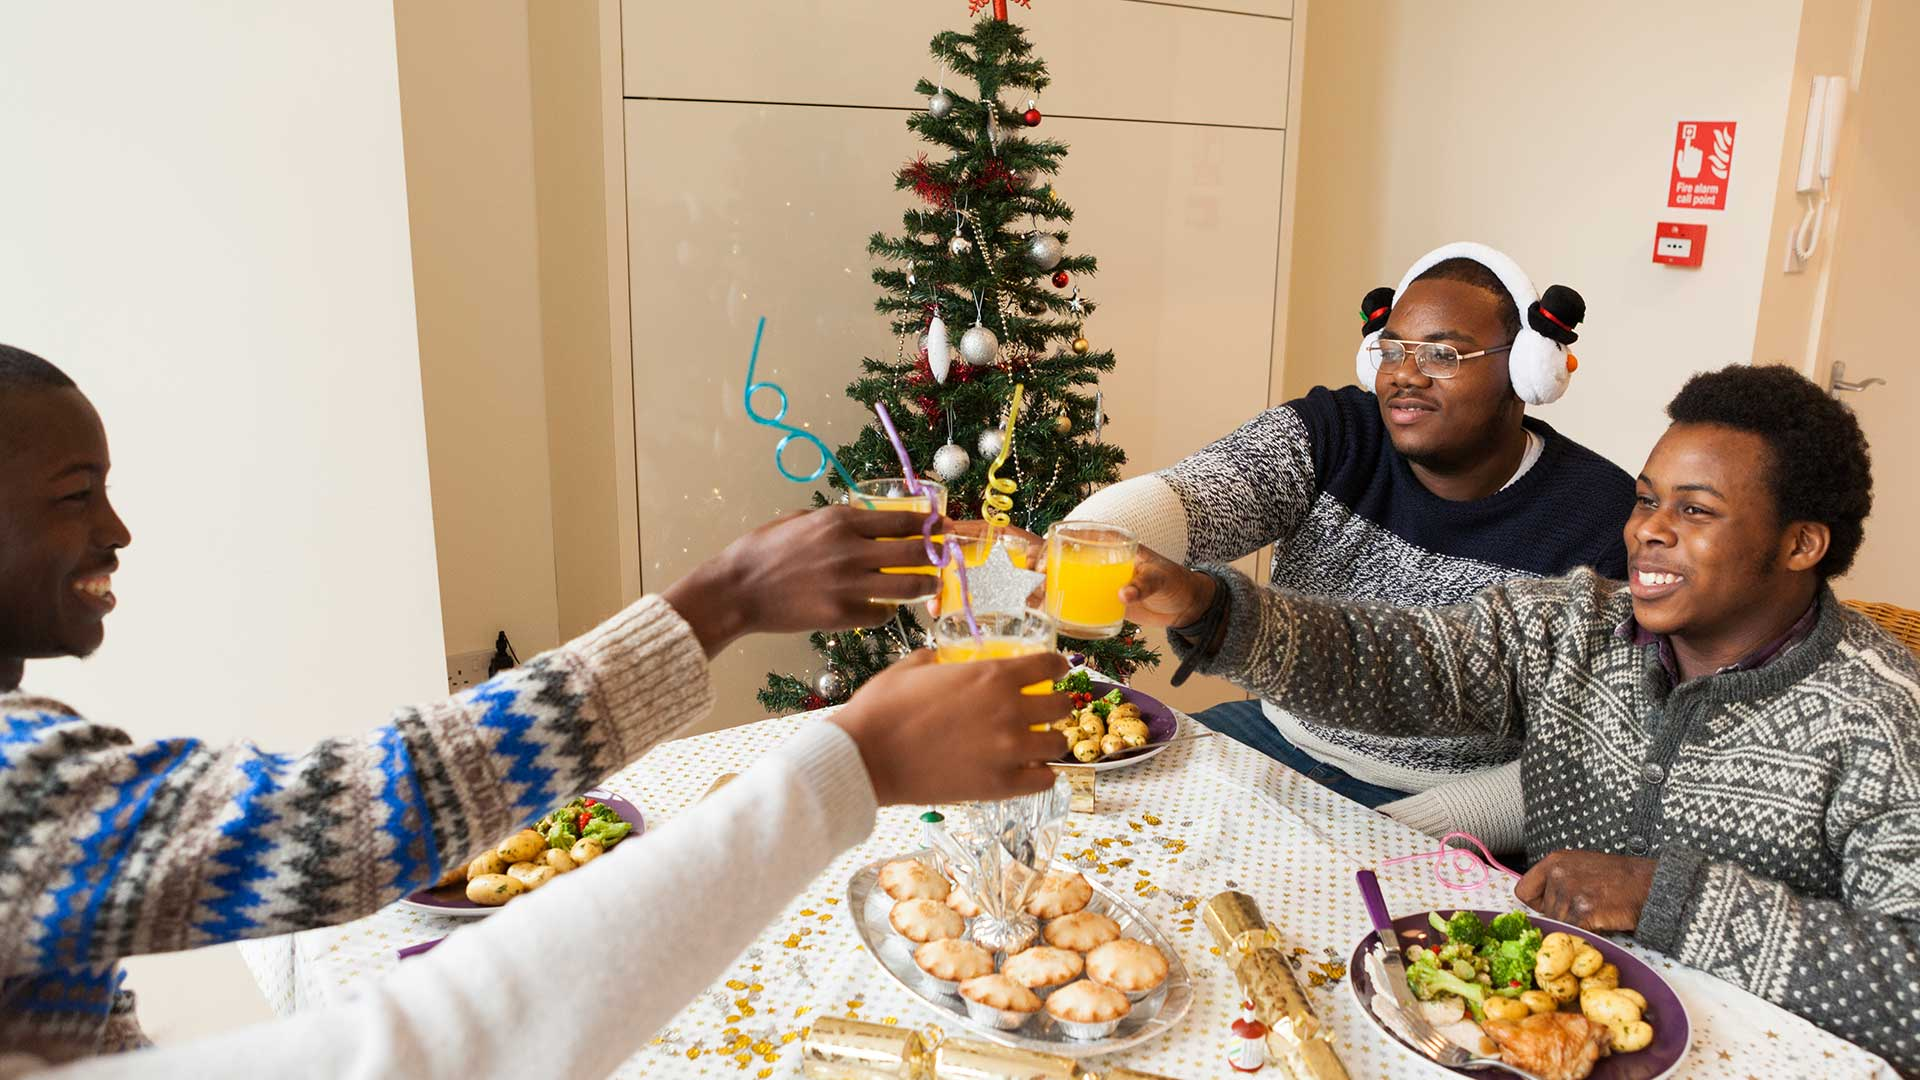 where can i donate my old sofa outdoor more than a christmas dinner | centrepoint